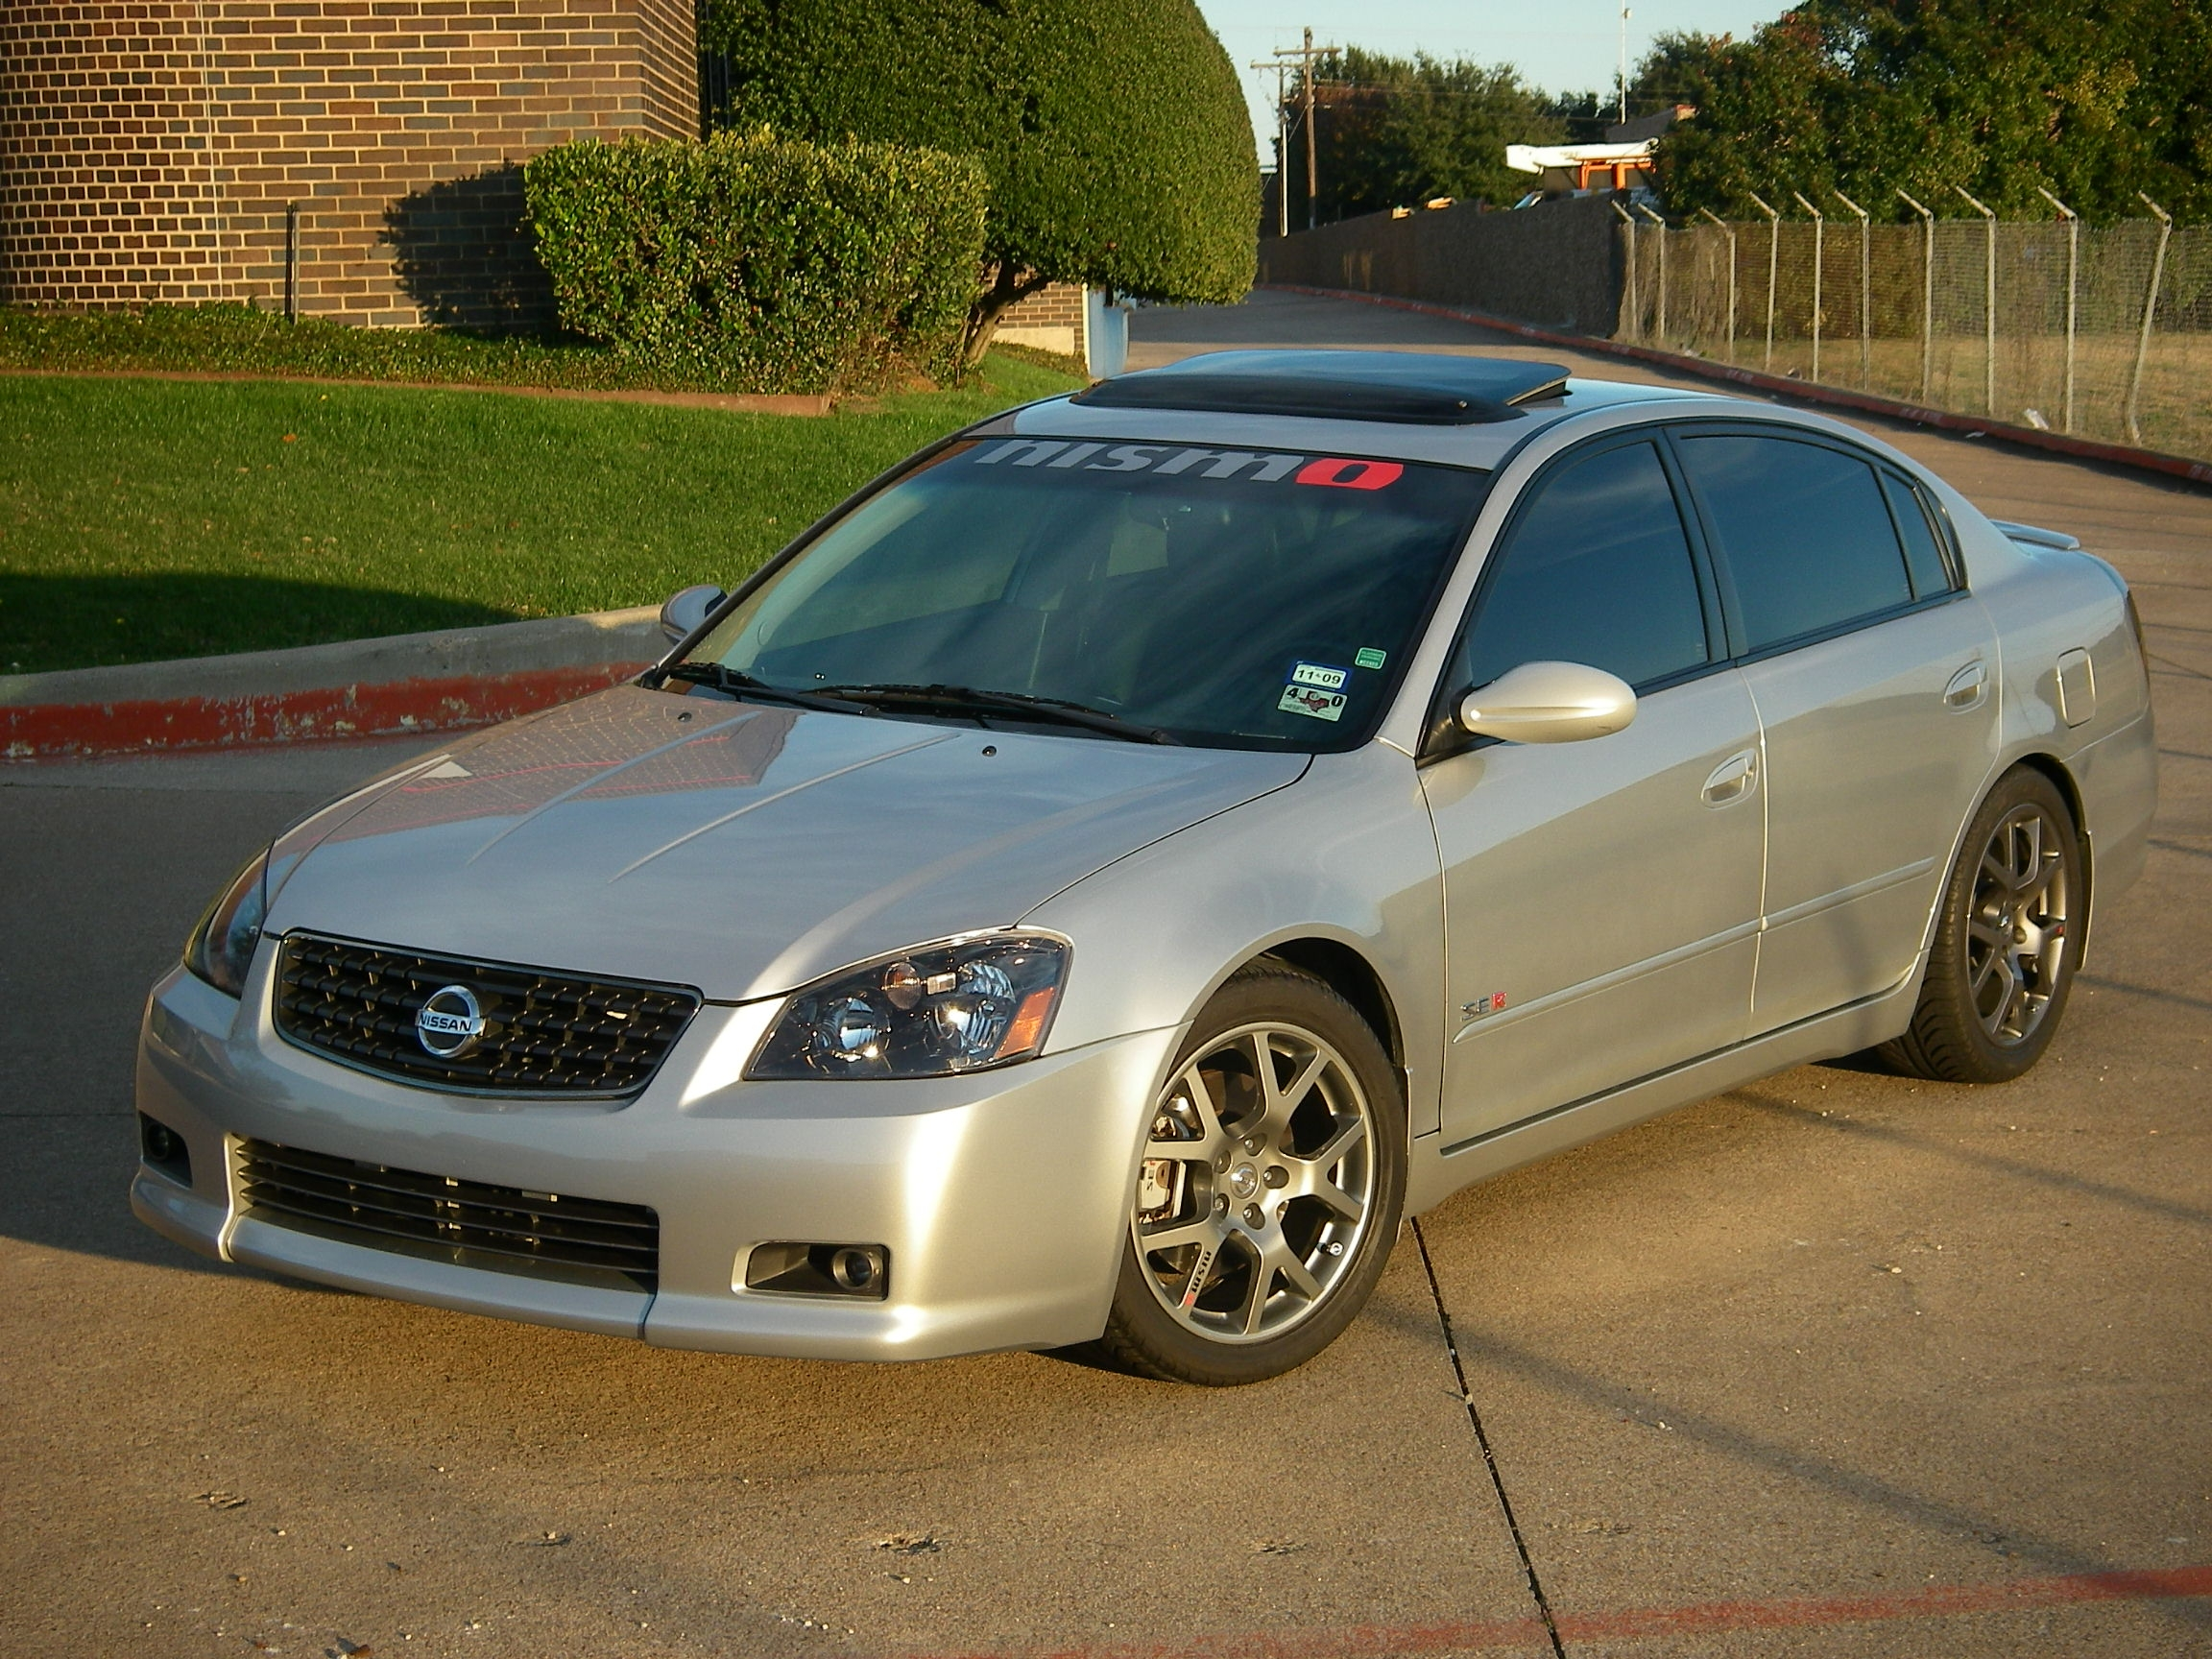 tech_06 2005 nissan altima3.5 se-r sedan 4d's photo gallery at